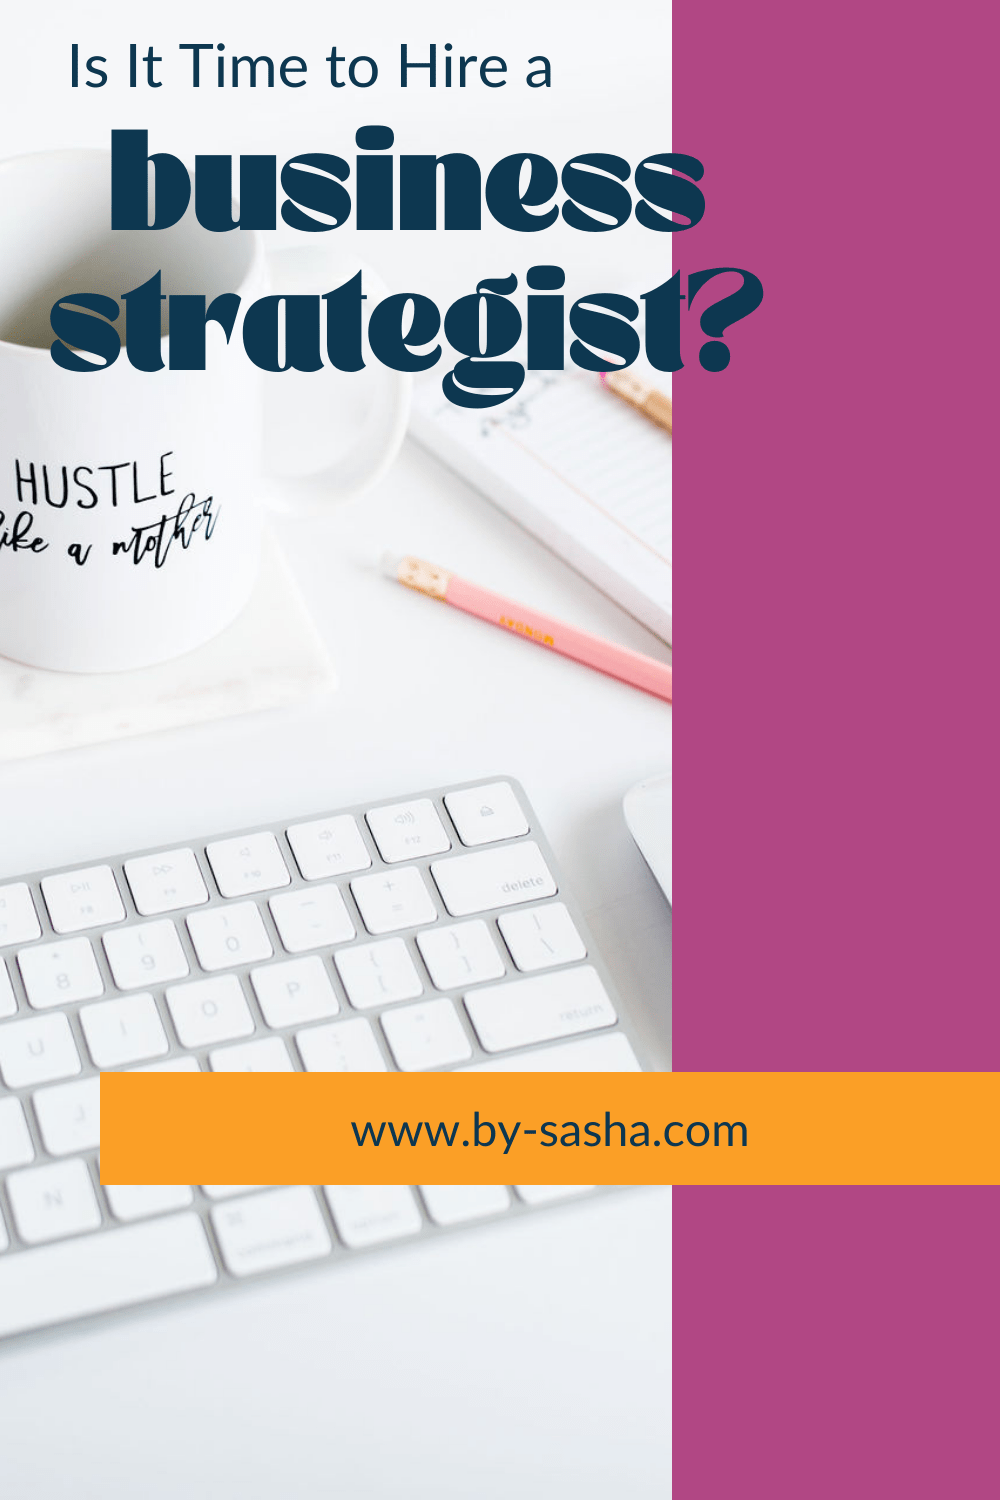 It It Time to Hire a Business Strategist - Mug with Keyboard